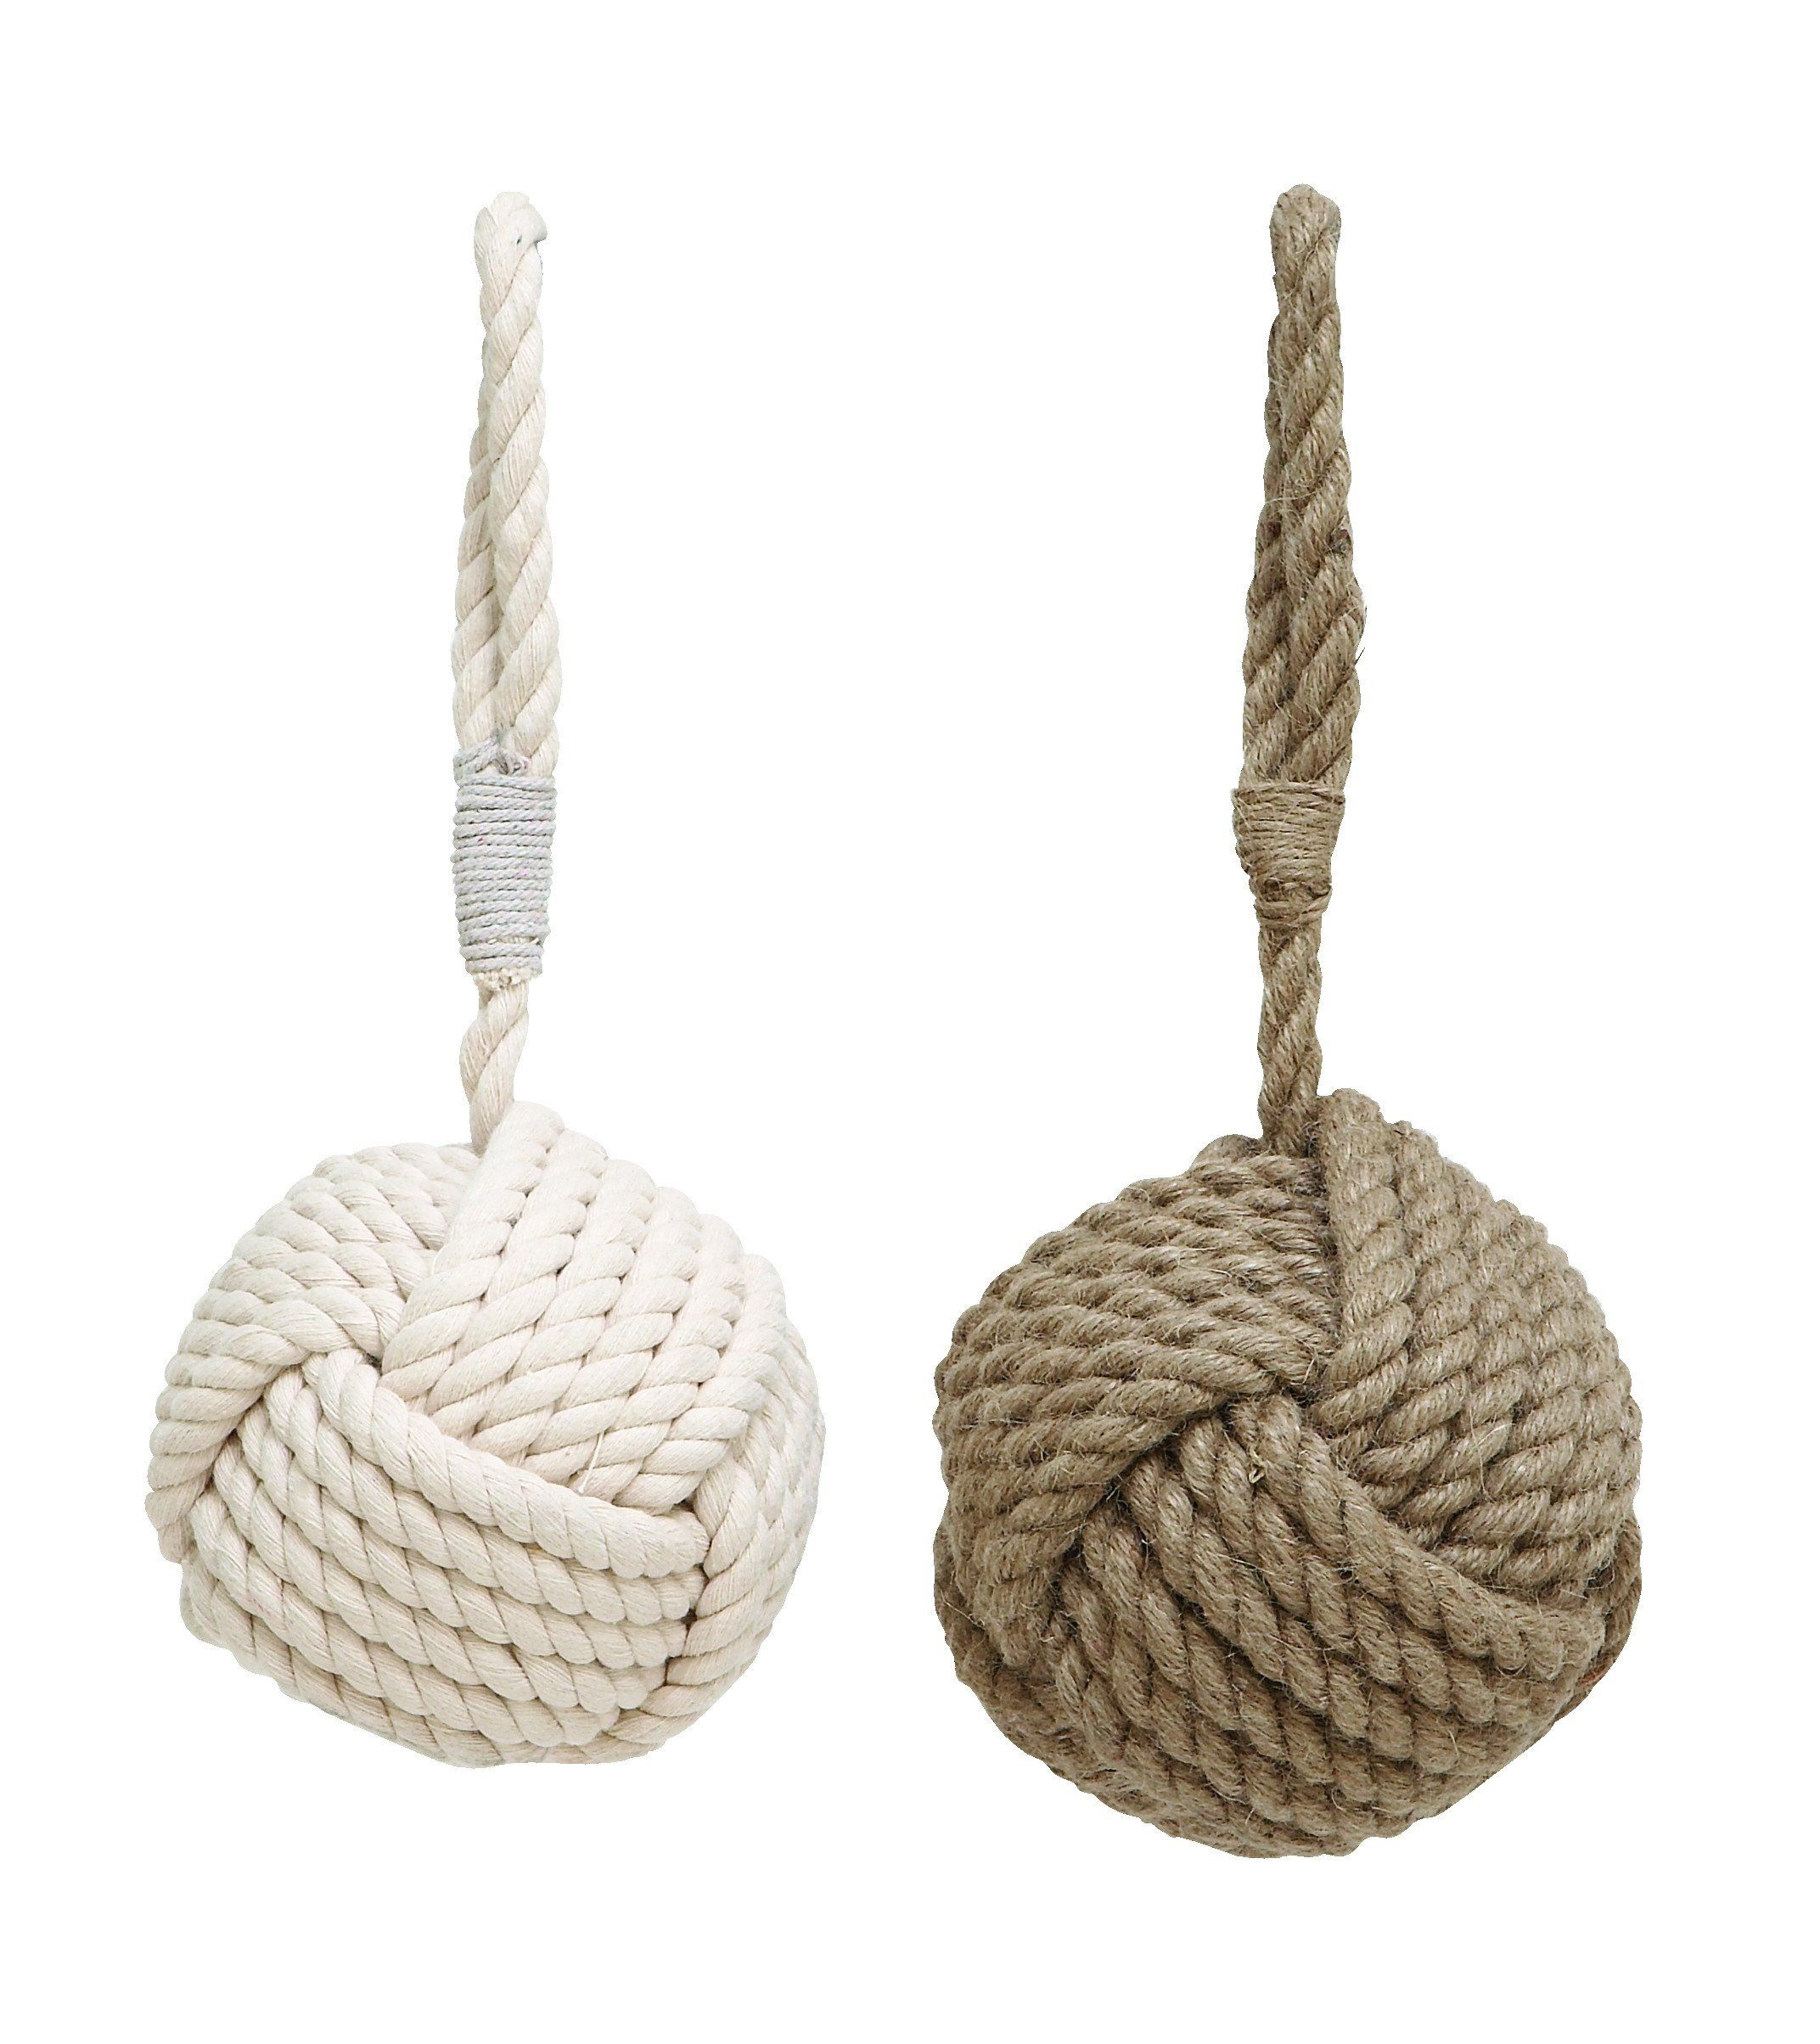 Faux Cotton and Jute Rope Door Stopper In Ball Shape, Set of